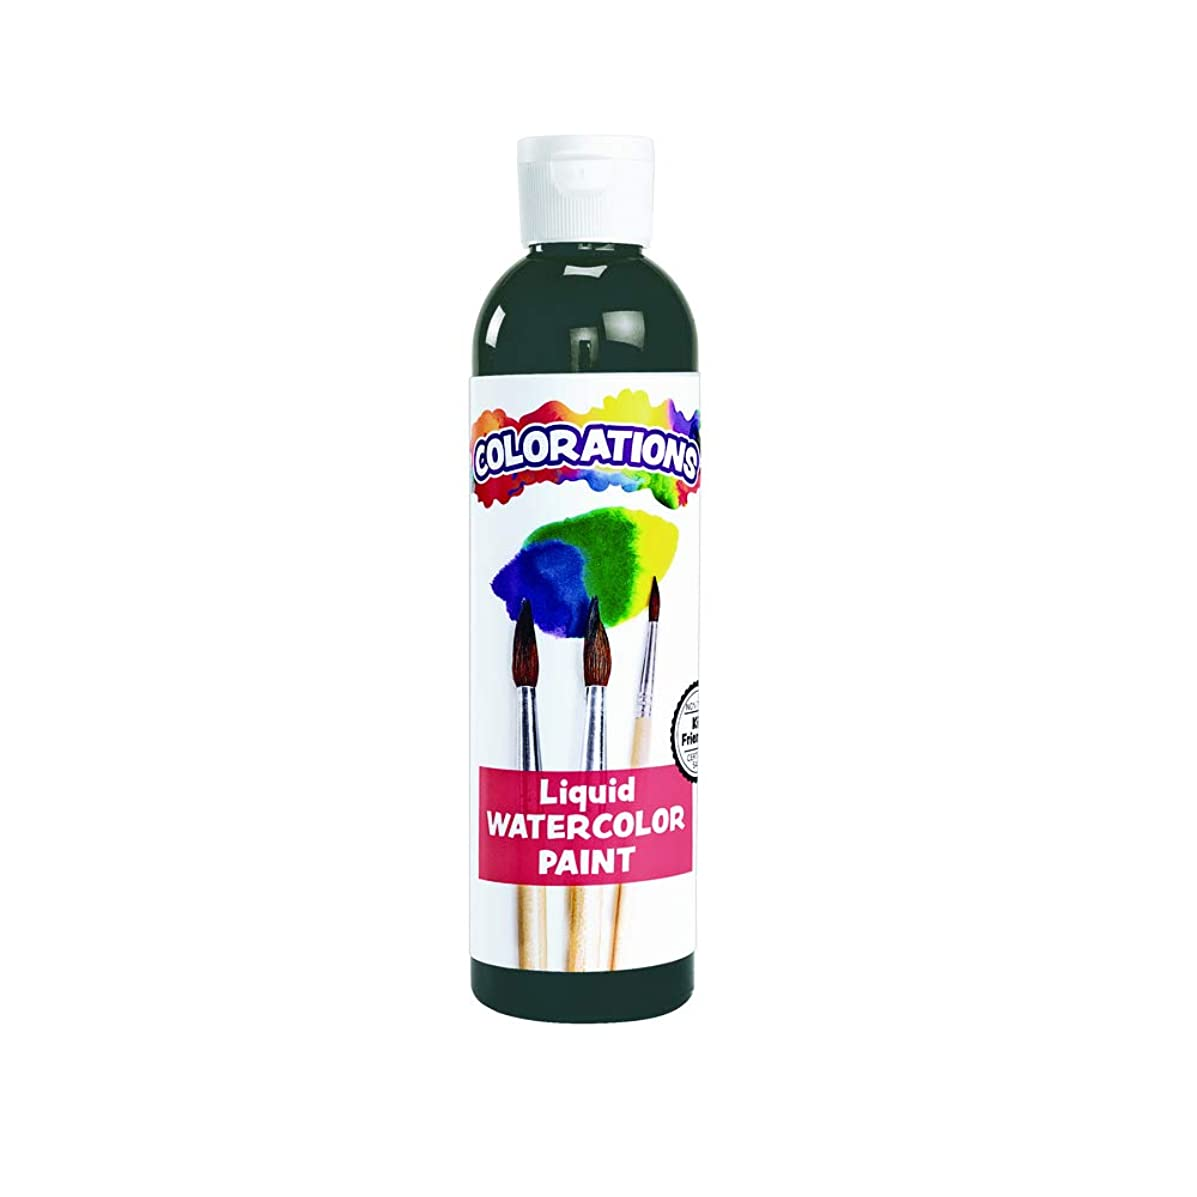 Colorations Liquid Watercolor Paint For Kids Black Arts and Crafts Material (8 oz) (Packaging may vary)